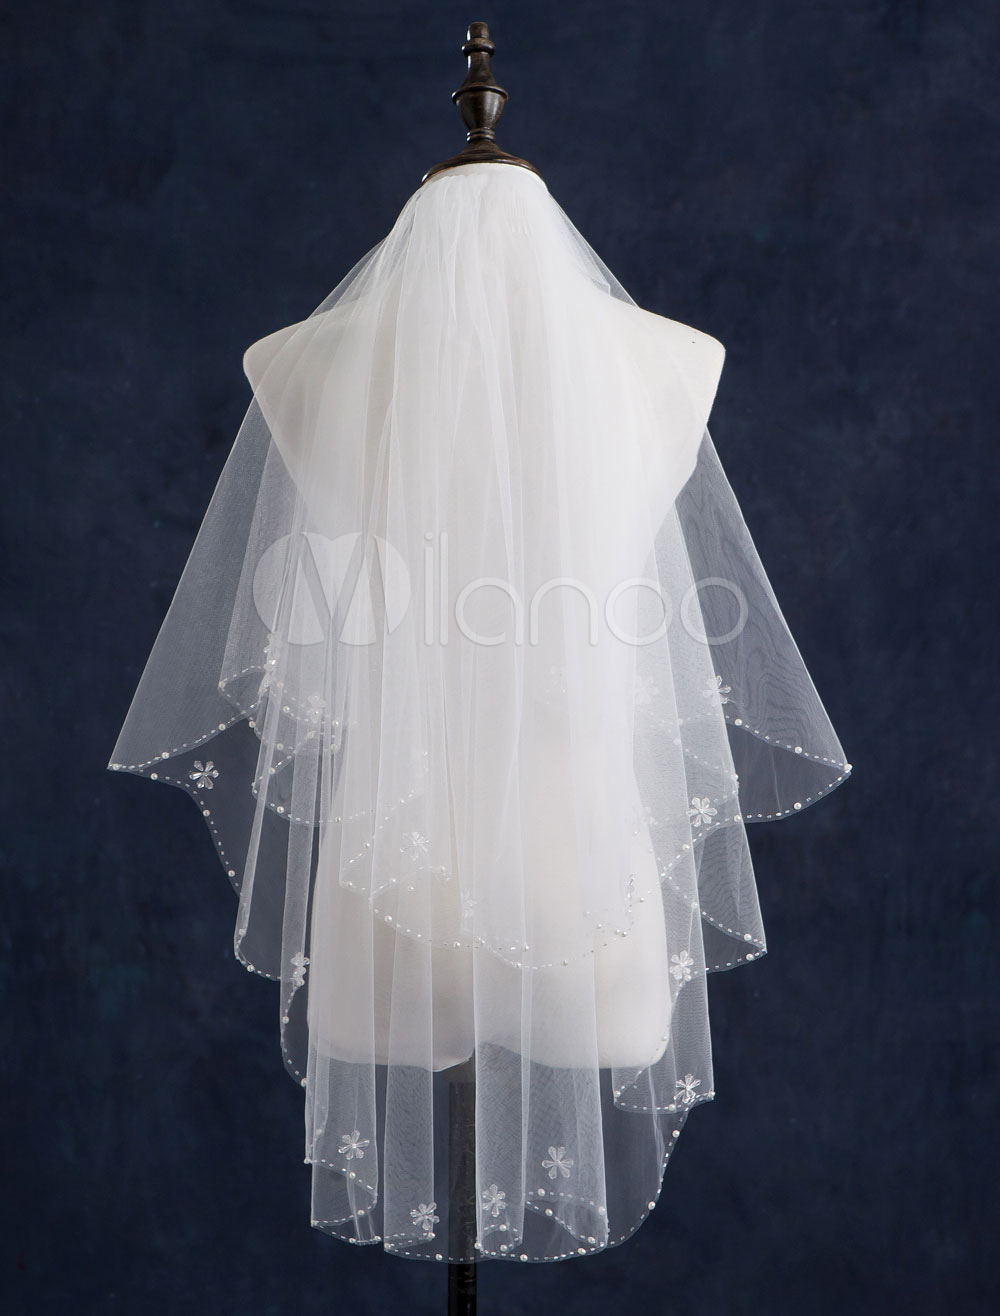 Pearl Wedding Veils Two-Tiered Beaded Edge Classic Shape Bridal Veils with Comb(140*85cm)